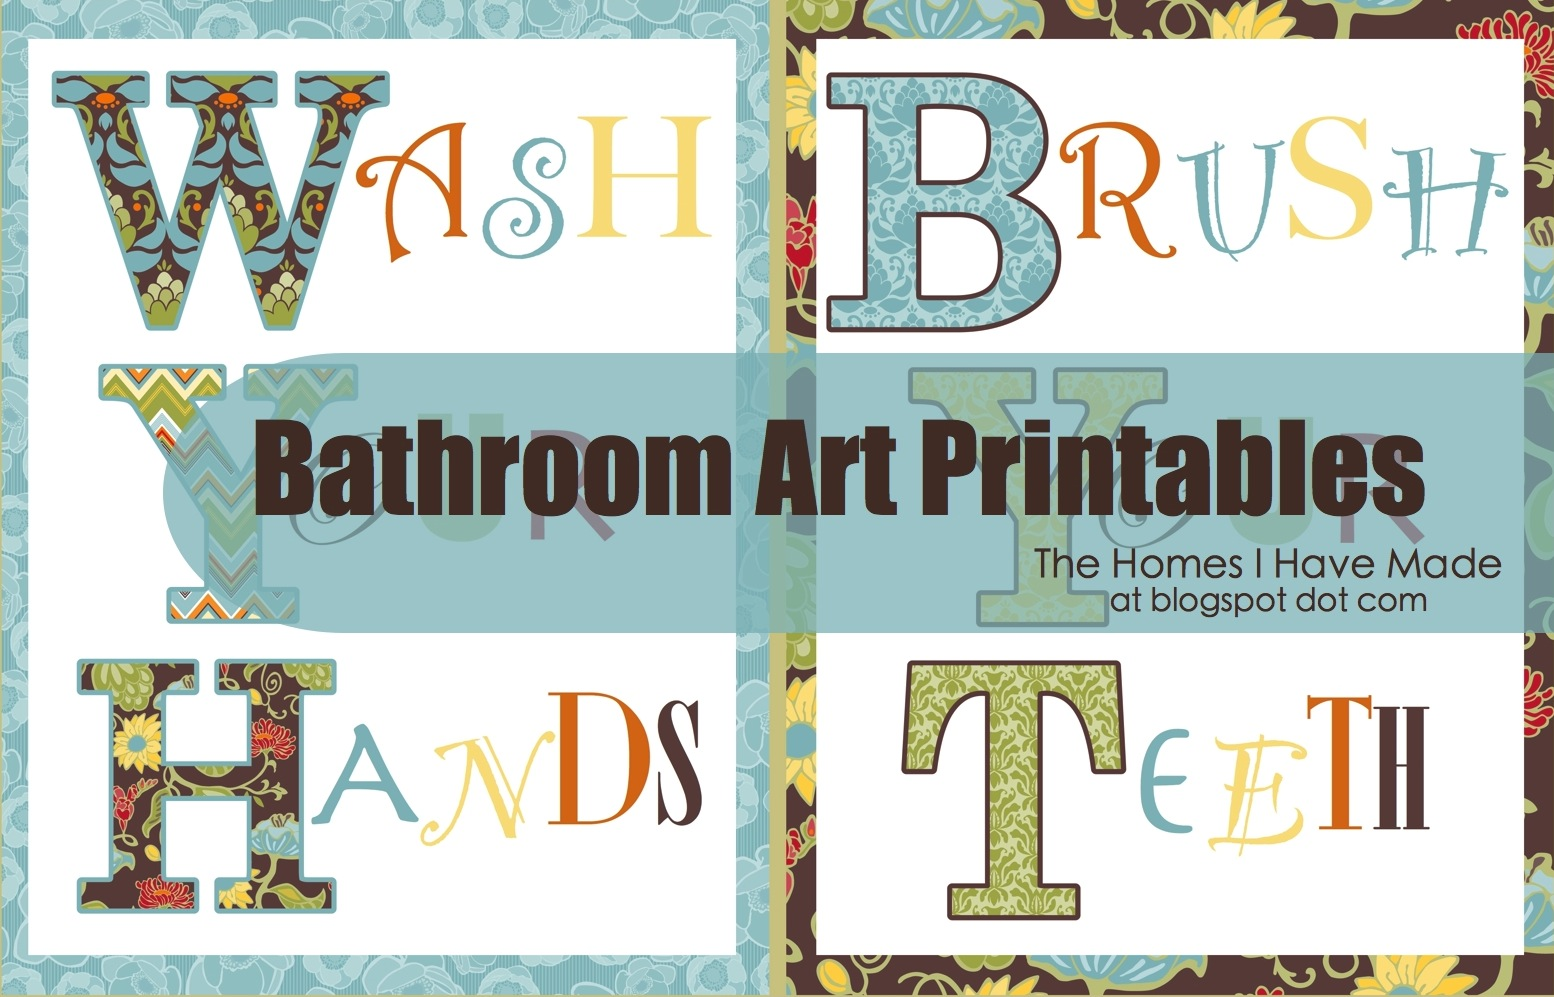 Bathroom Wall Art Printables | The Homes I Have Made for Bathroom Wall Decor Printables  lp5fsj